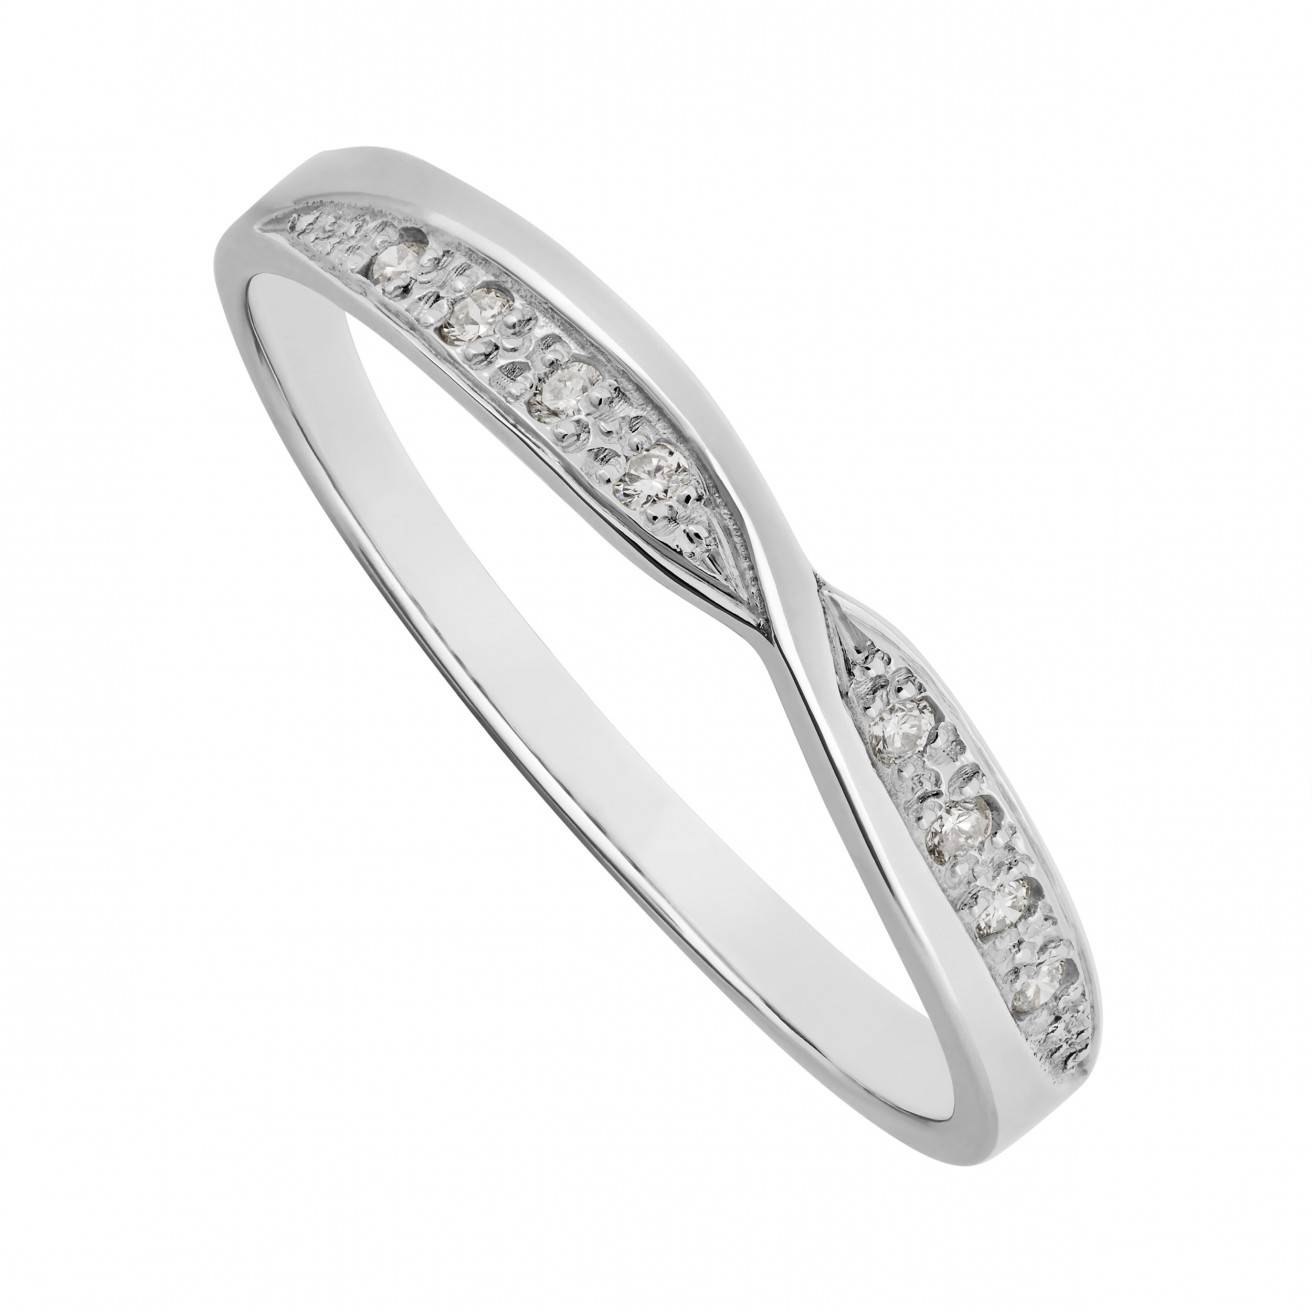 Buy White Gold Wedding Rings Online – Fraser Hart Intended For Twisted Diamond Wedding Bands (View 10 of 15)